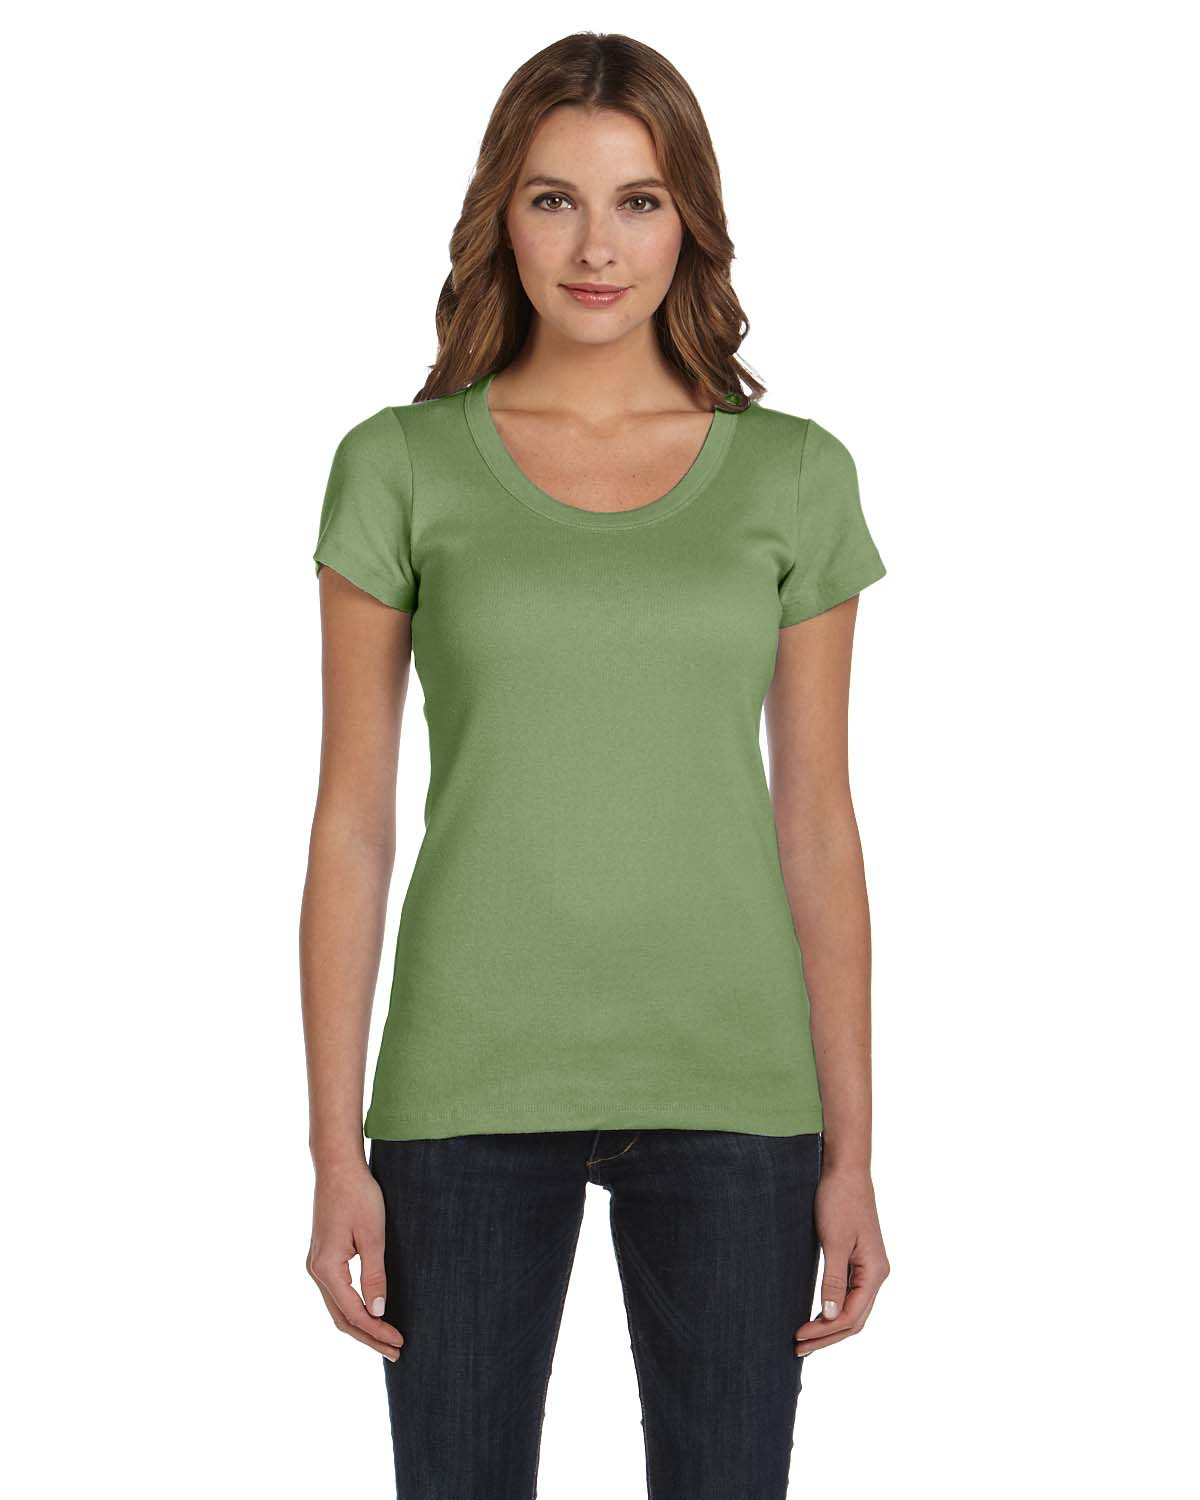 Bella B1003  Women's Baby Rib Scoop Neck T-Shirt